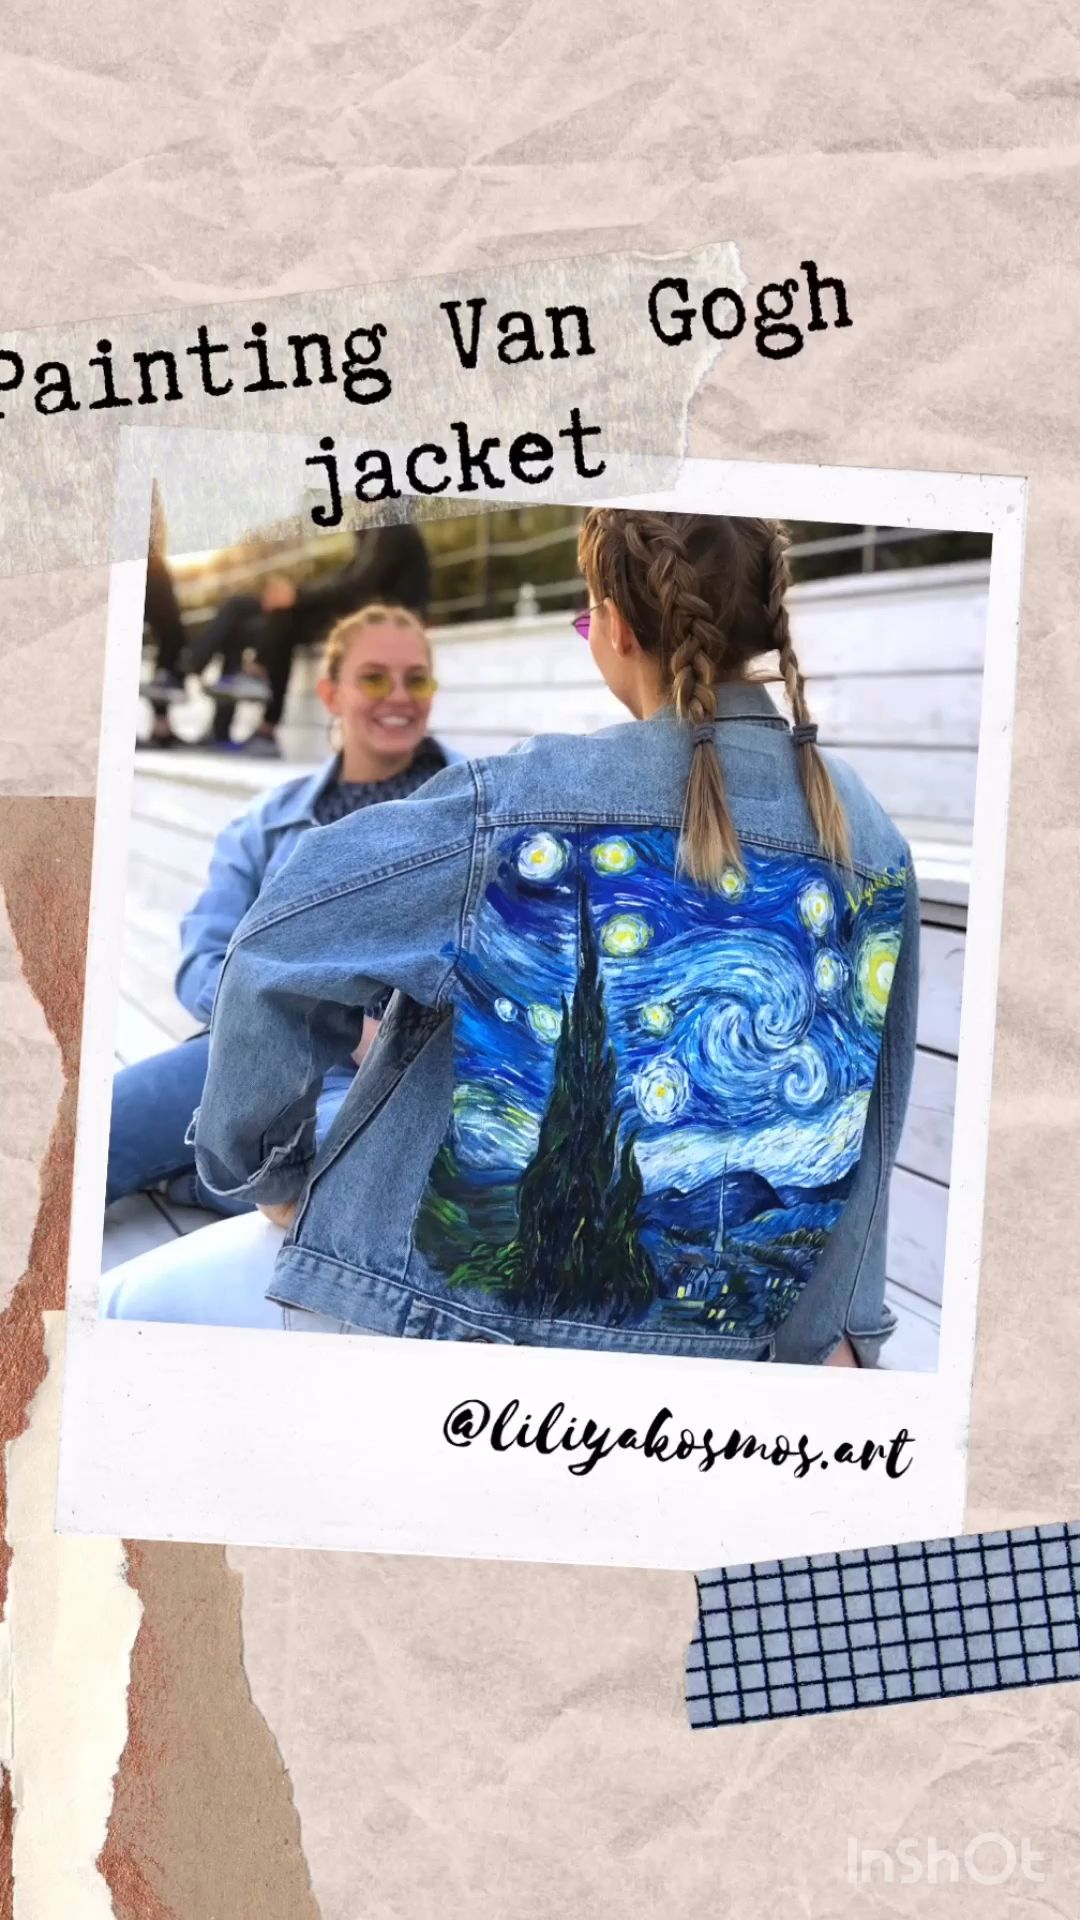 Hand painted Van Gogh Starry Night jacket by @liliyakosmos.art. Customized embellished denim  #wearableart